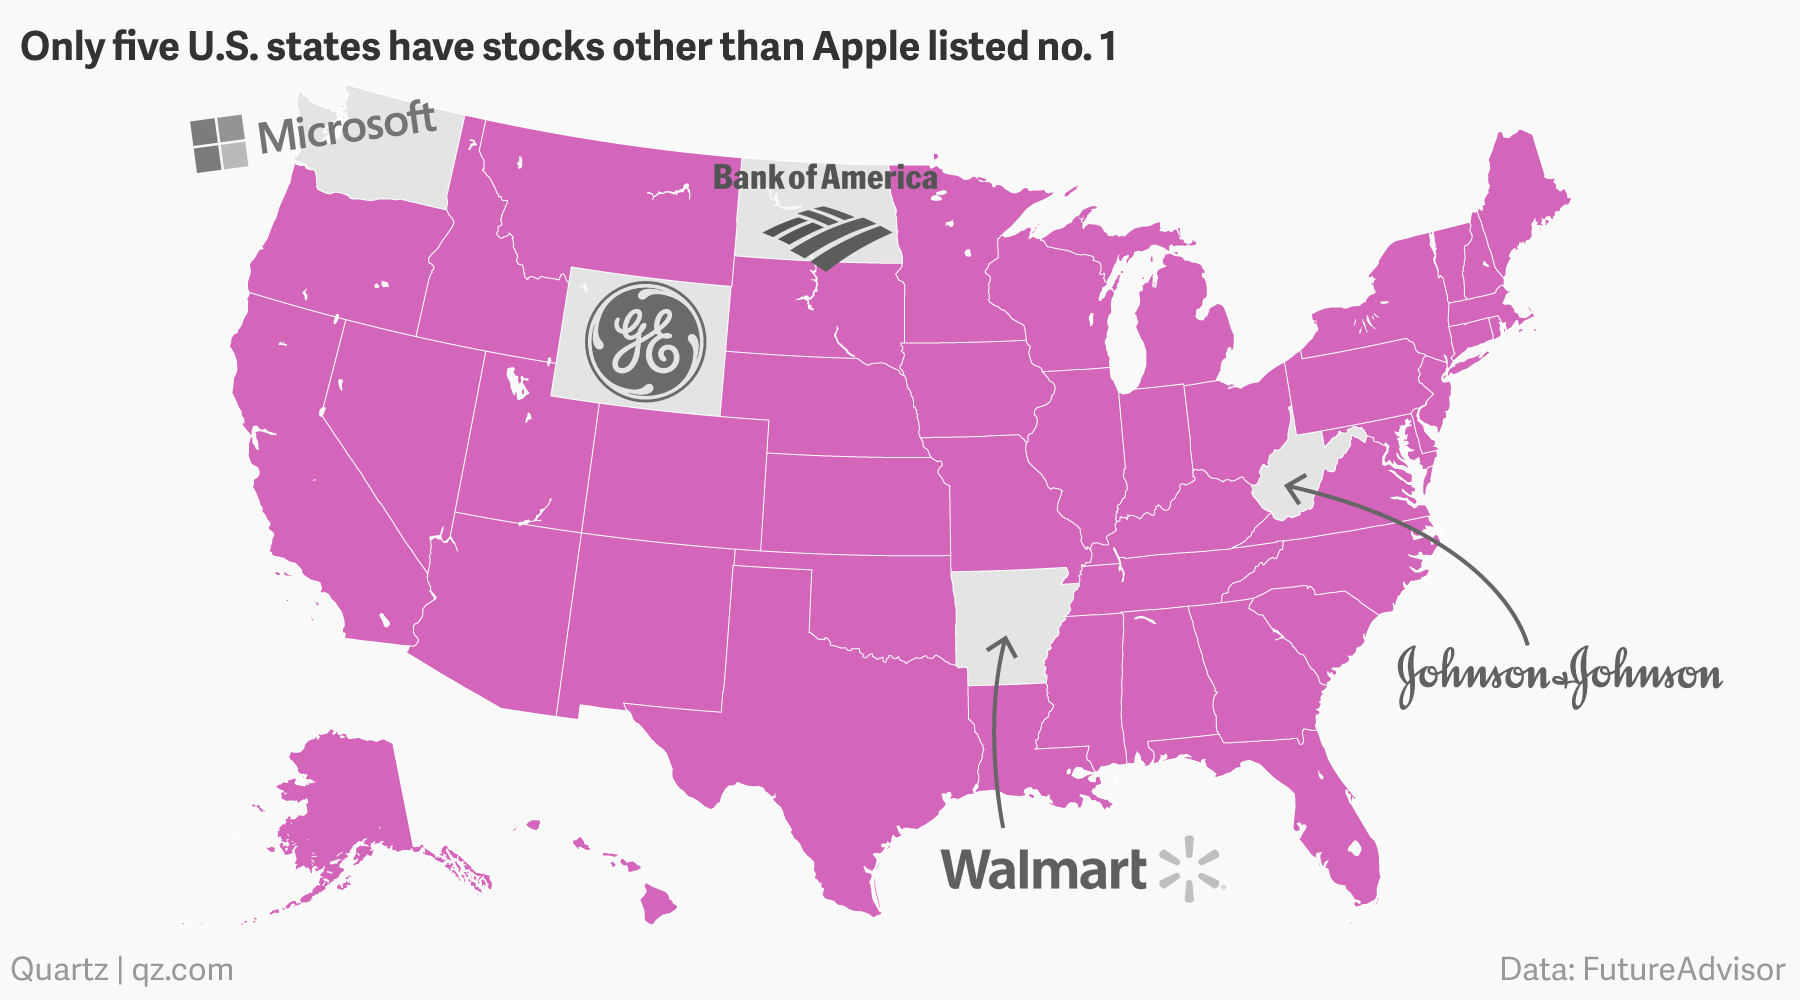 Only-five-states-don-t-have-Apple-listed-as-the-no-1-stock_mapbuilder (2)